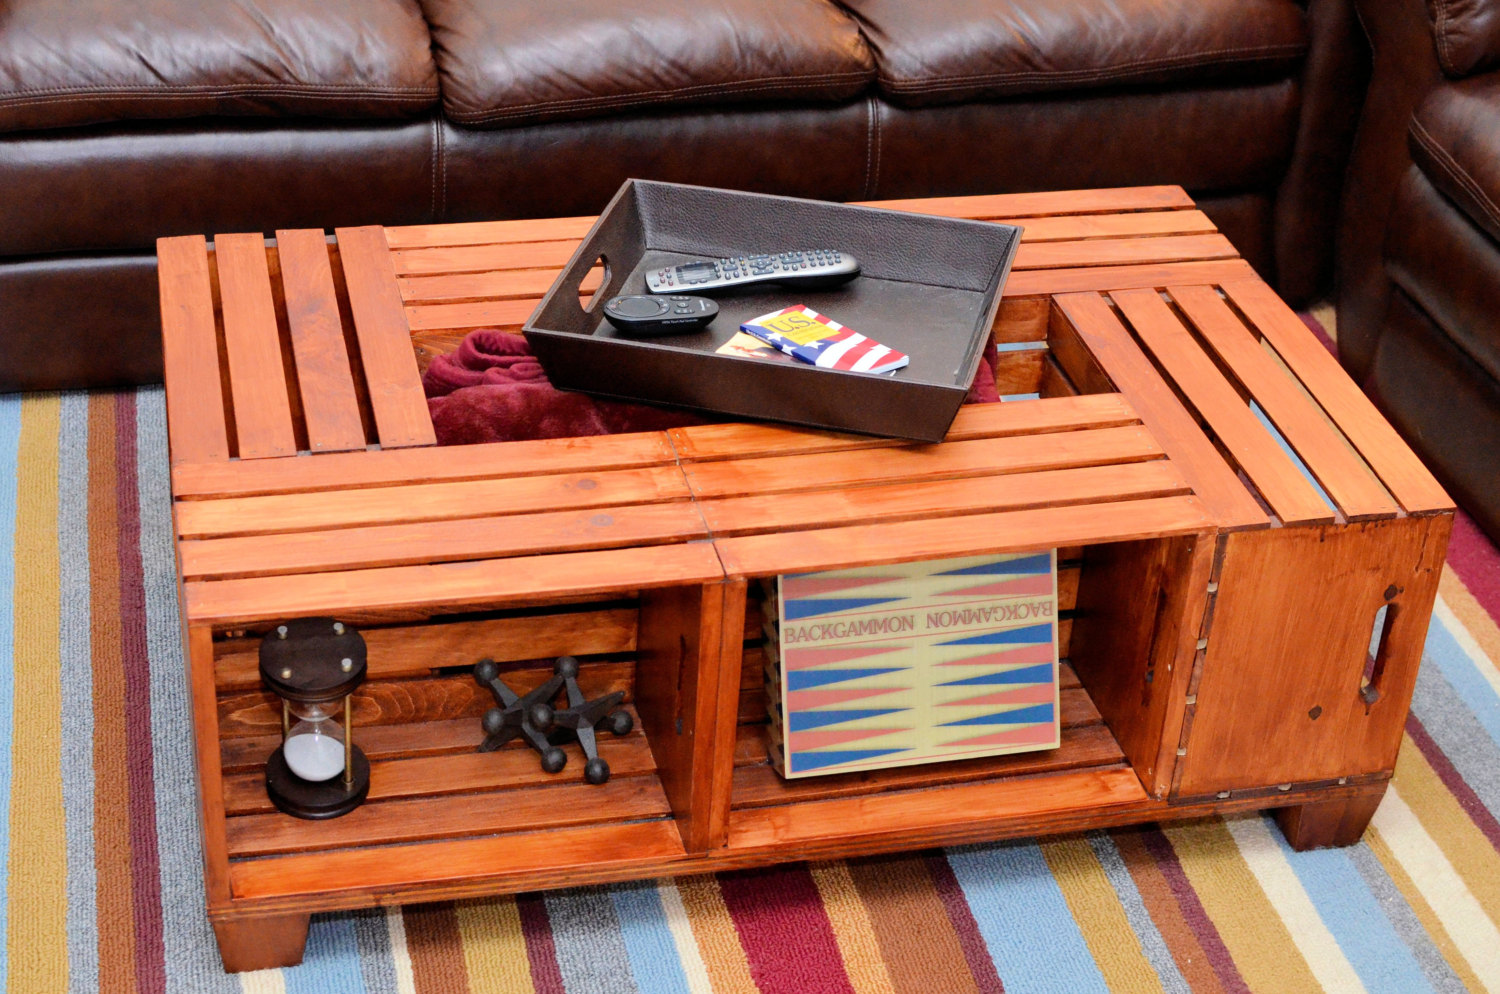 16 handy diy projects from old wooden crates style - Cajones de madera ikea ...